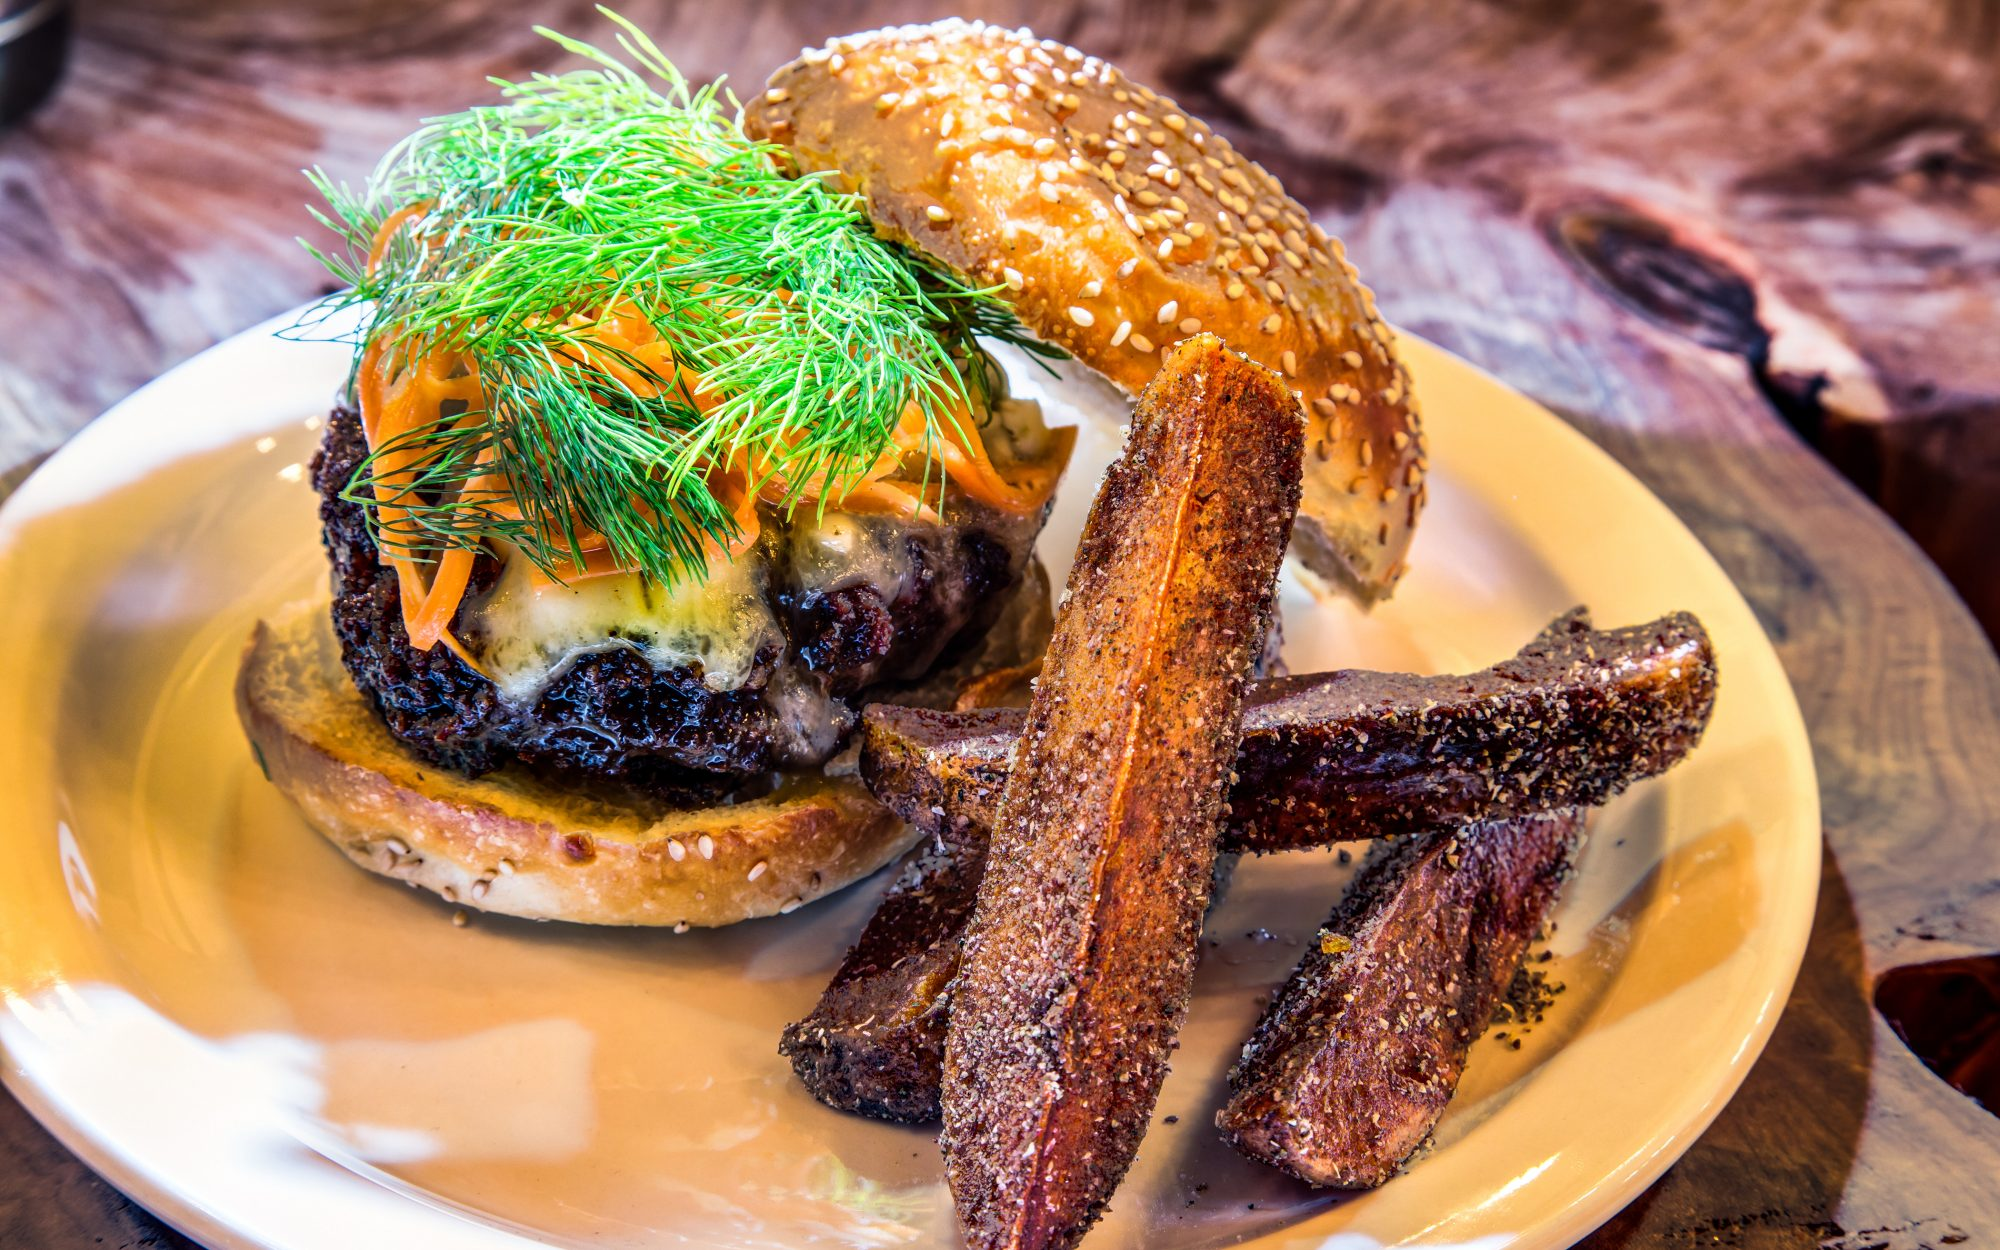 The Mutton Burger ($18) at Seamstress